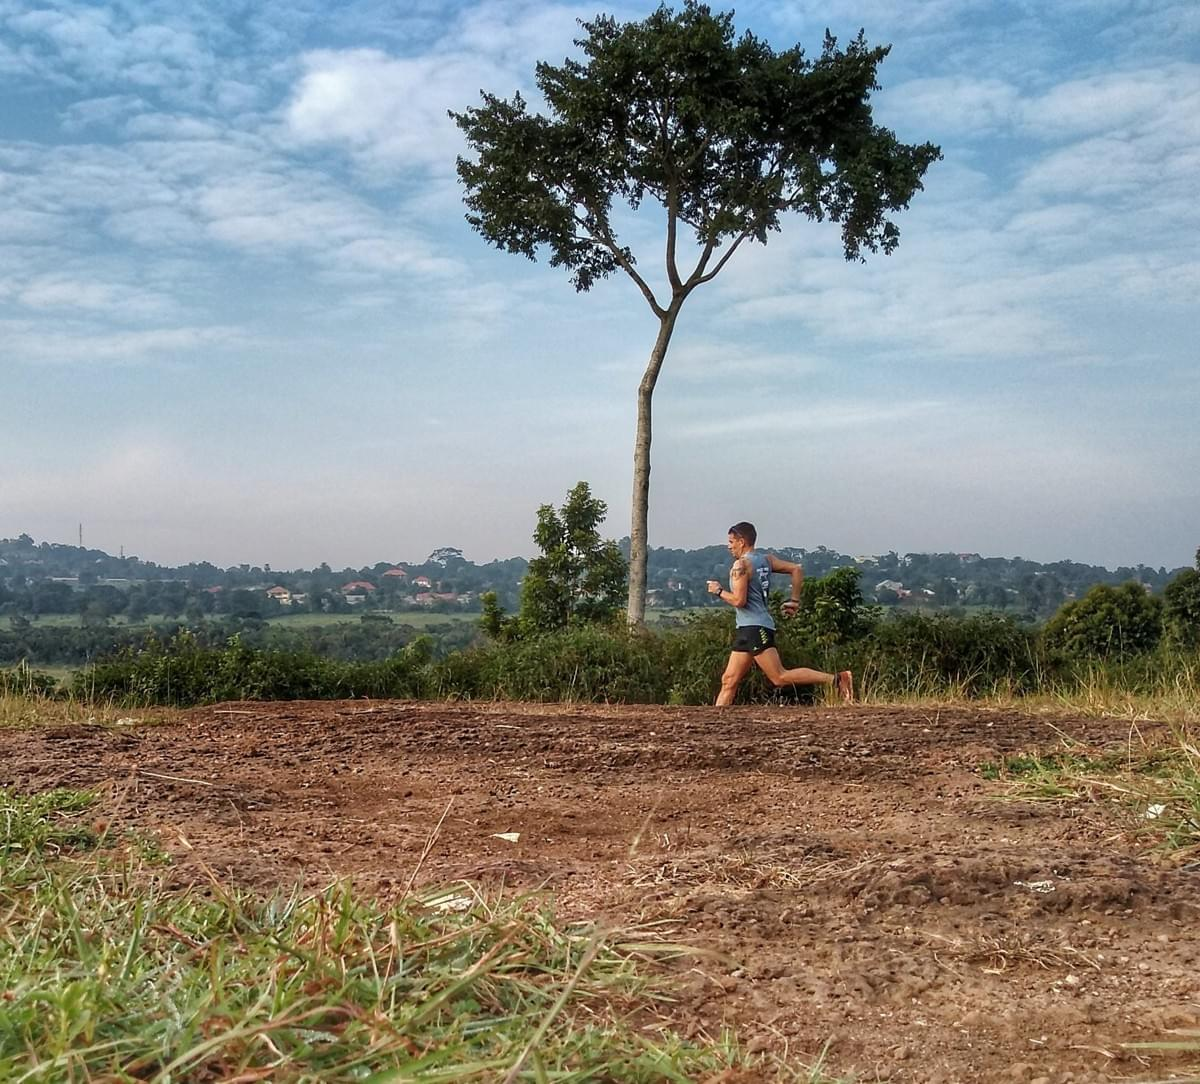 A solo trail runner runs past a large tree in Entebbe, Uganda